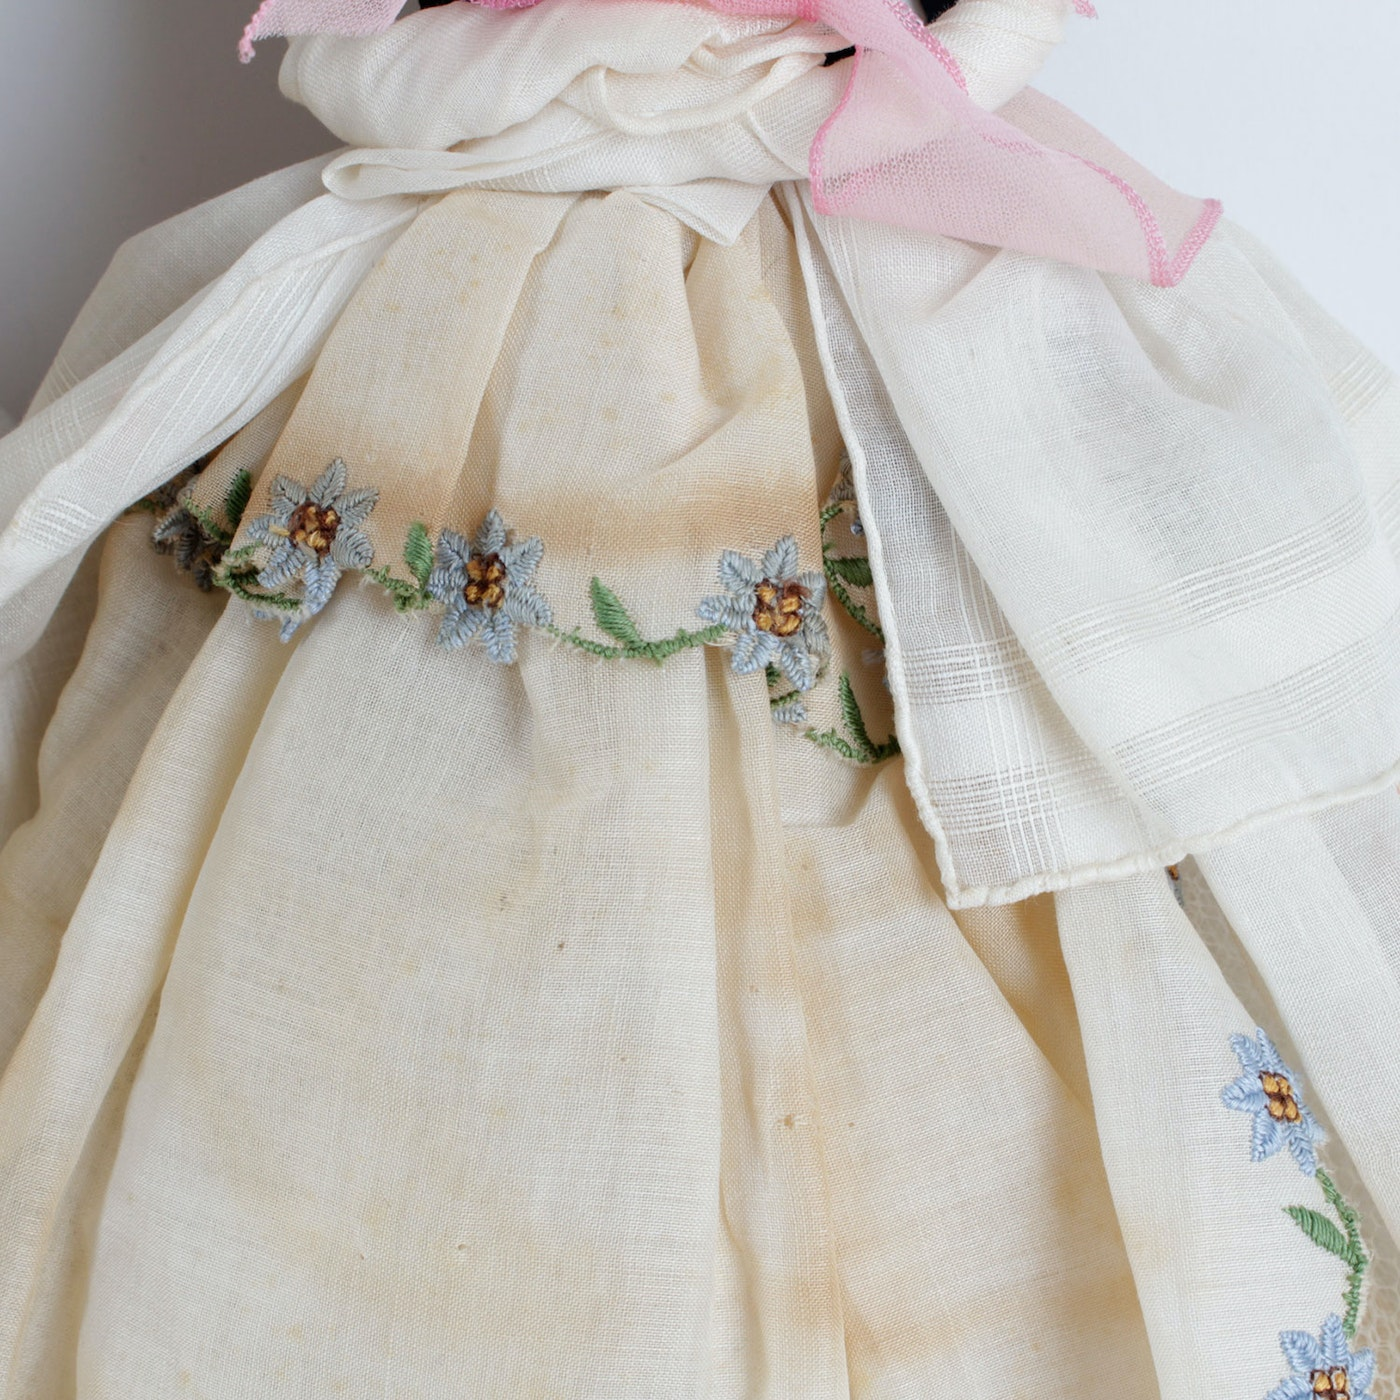 Neiman Marcus Pink Home Decor Ebth: Vintage Handkerchief Doll From Neiman Marcus And A Larger